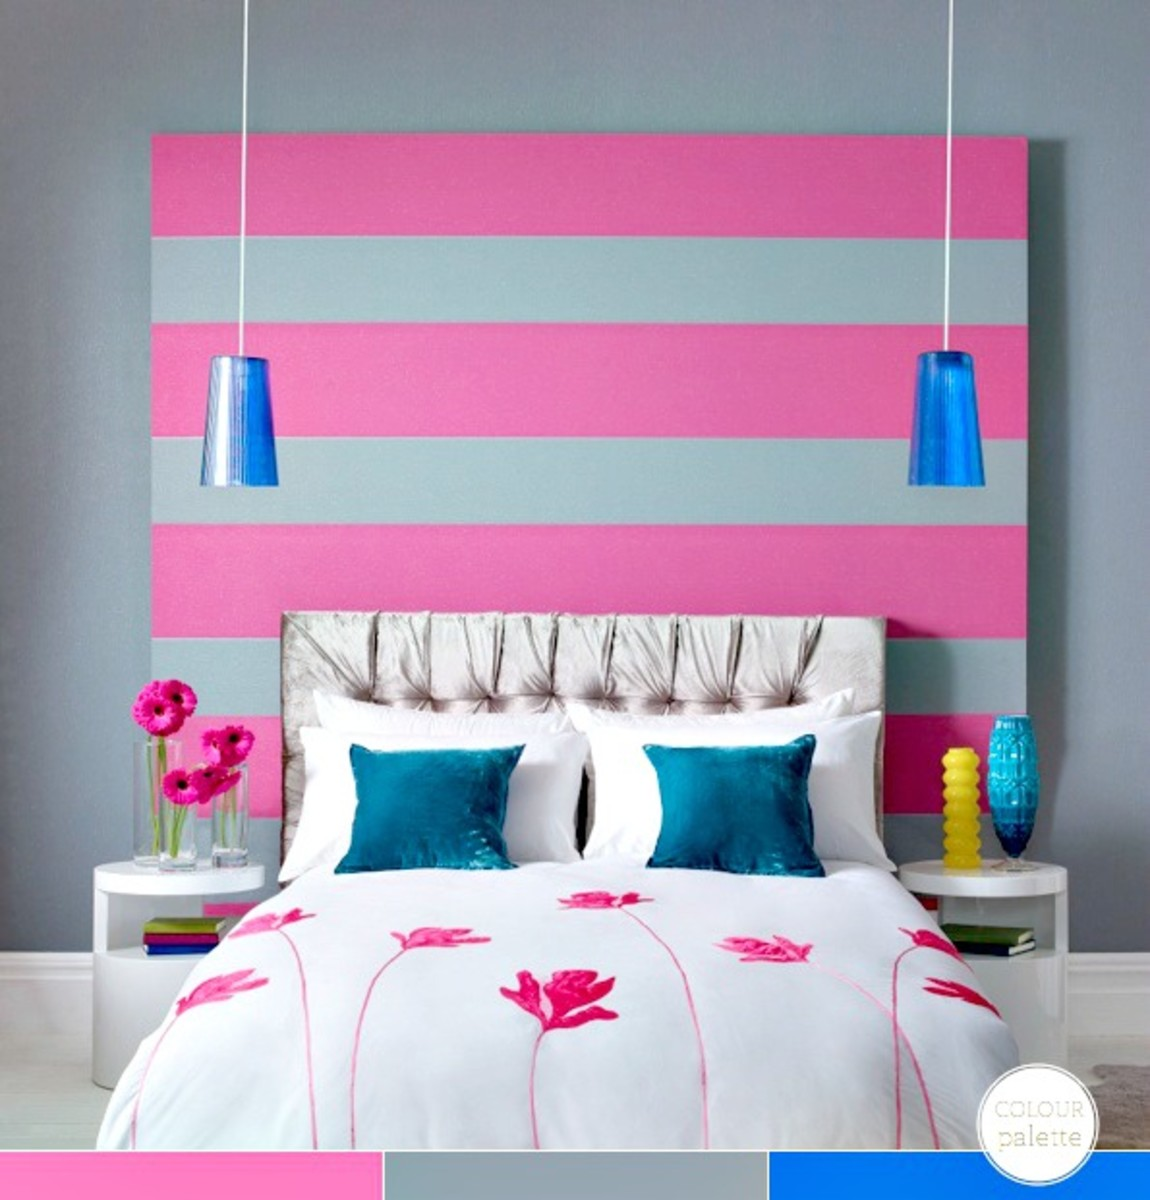 15 Fun Girl Room Ideas www.TodaysMama.com